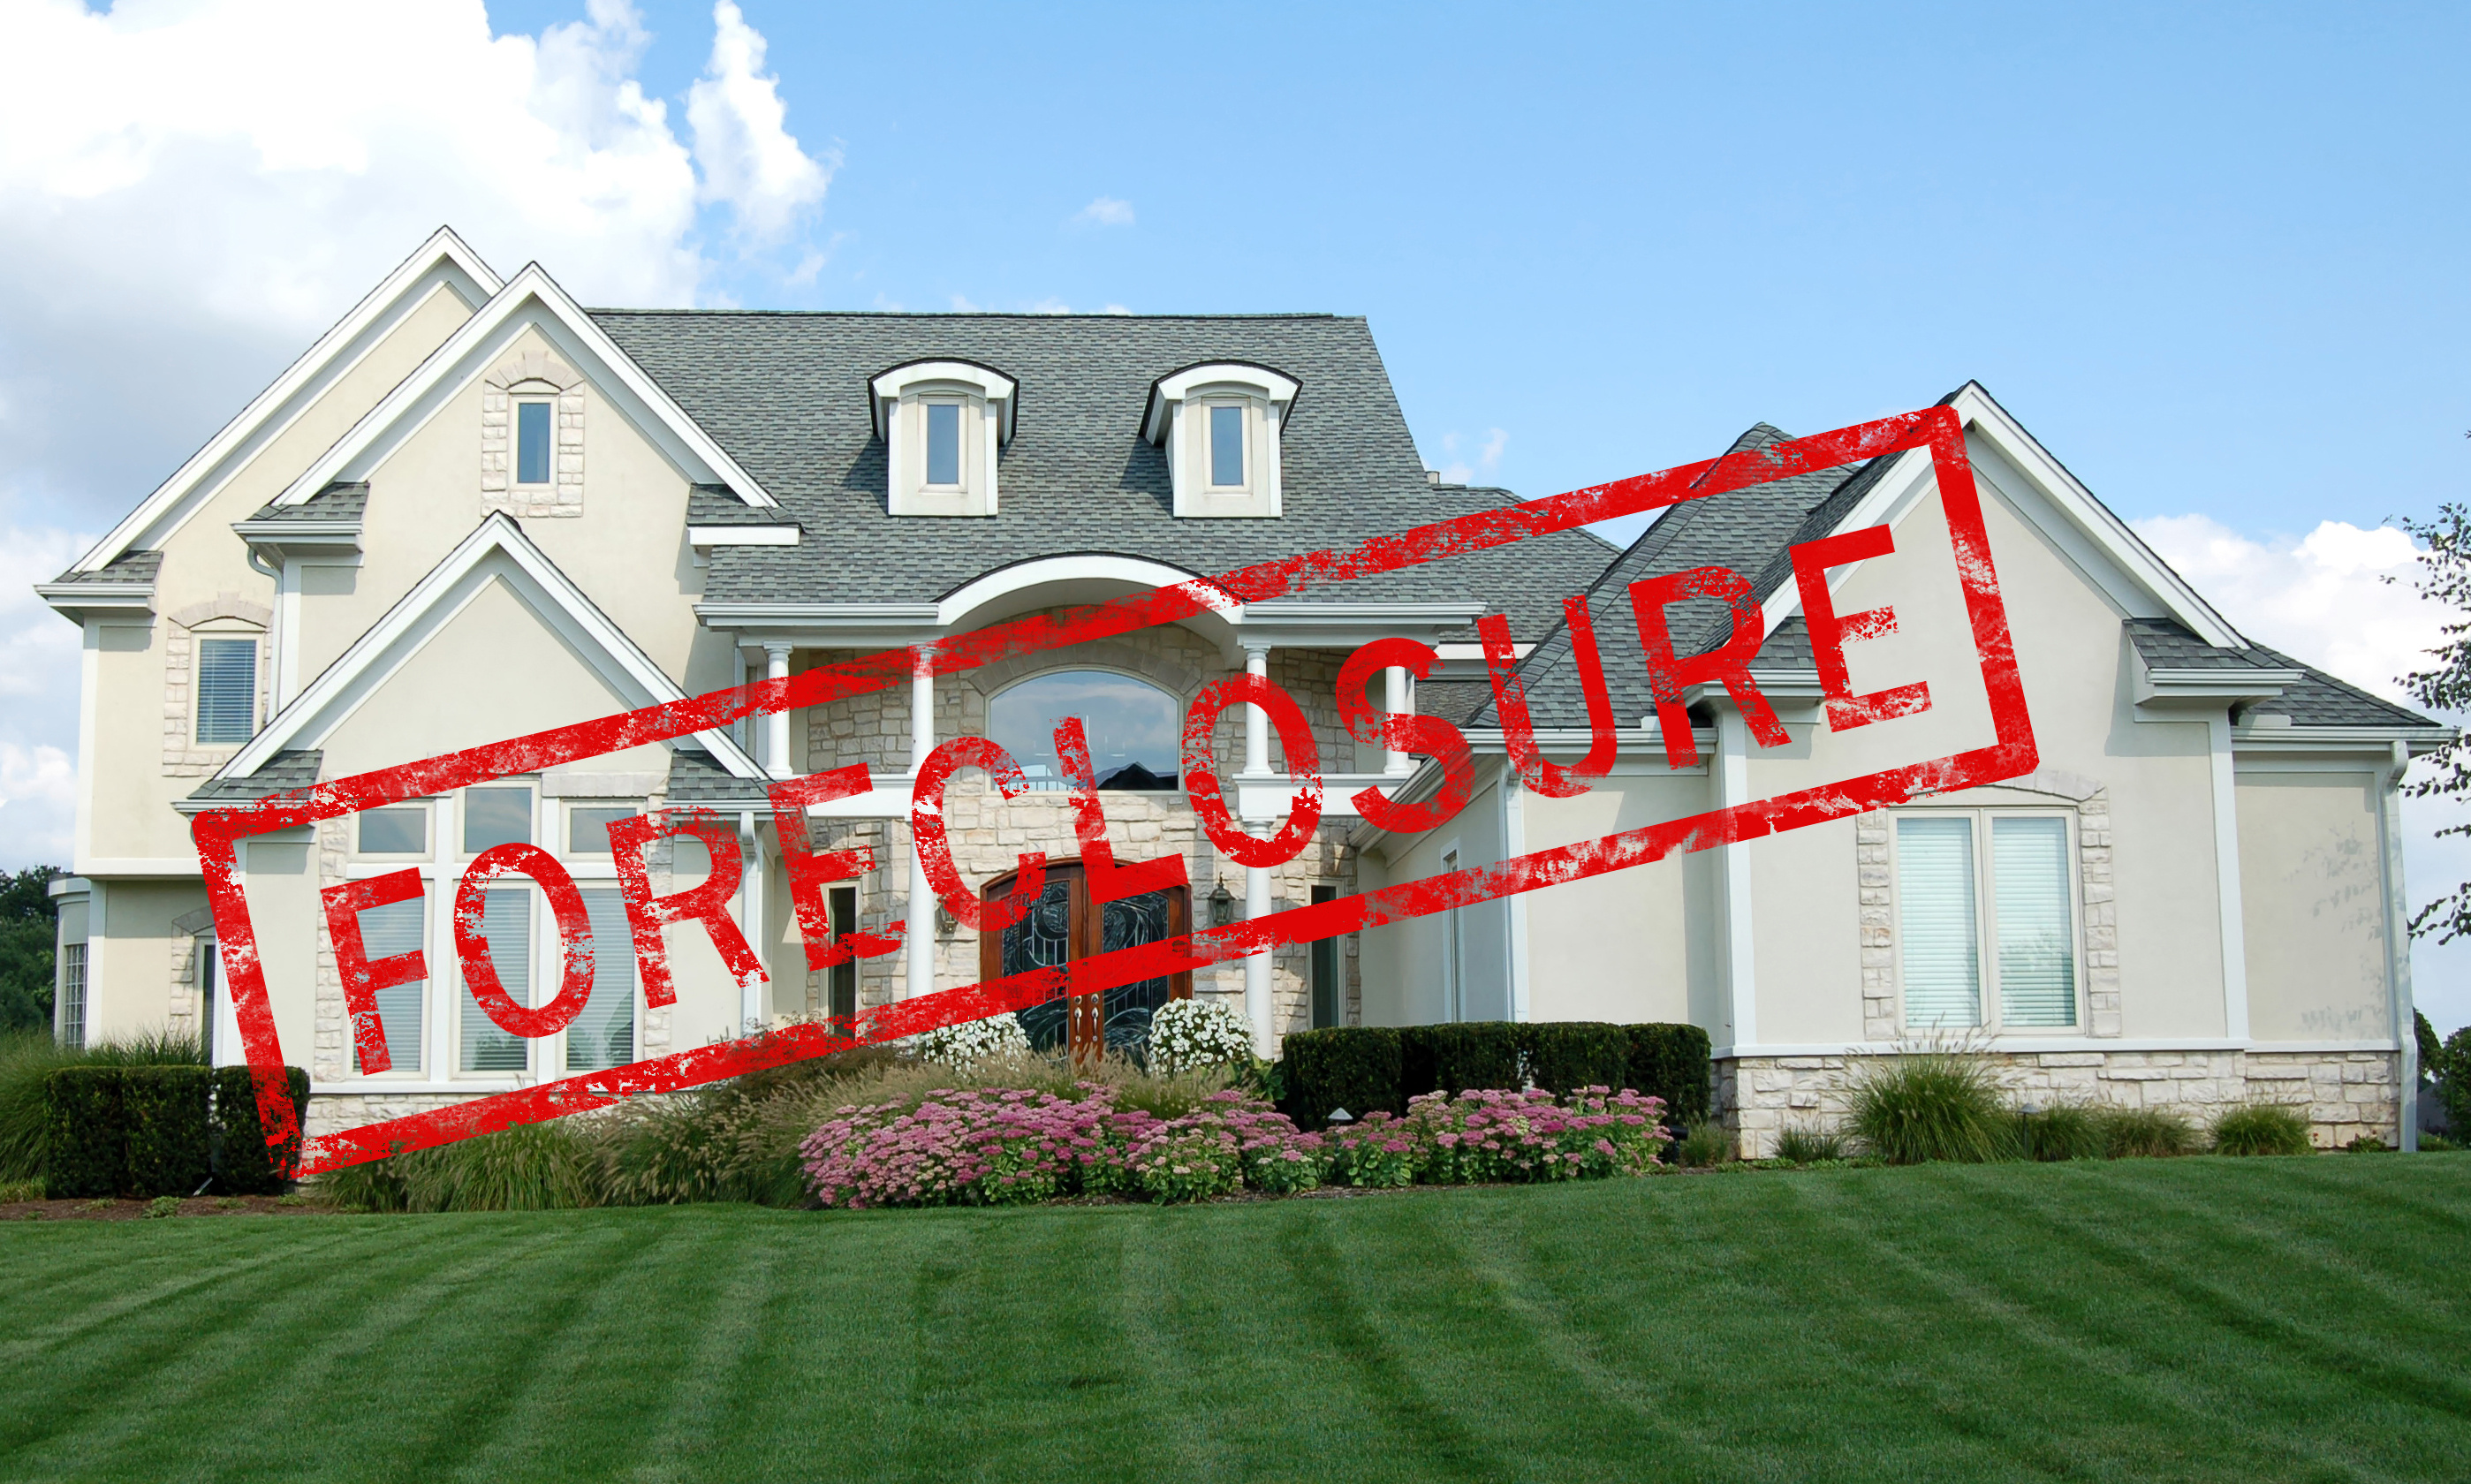 Call Crest Appraisal Services when you need valuations of King foreclosures